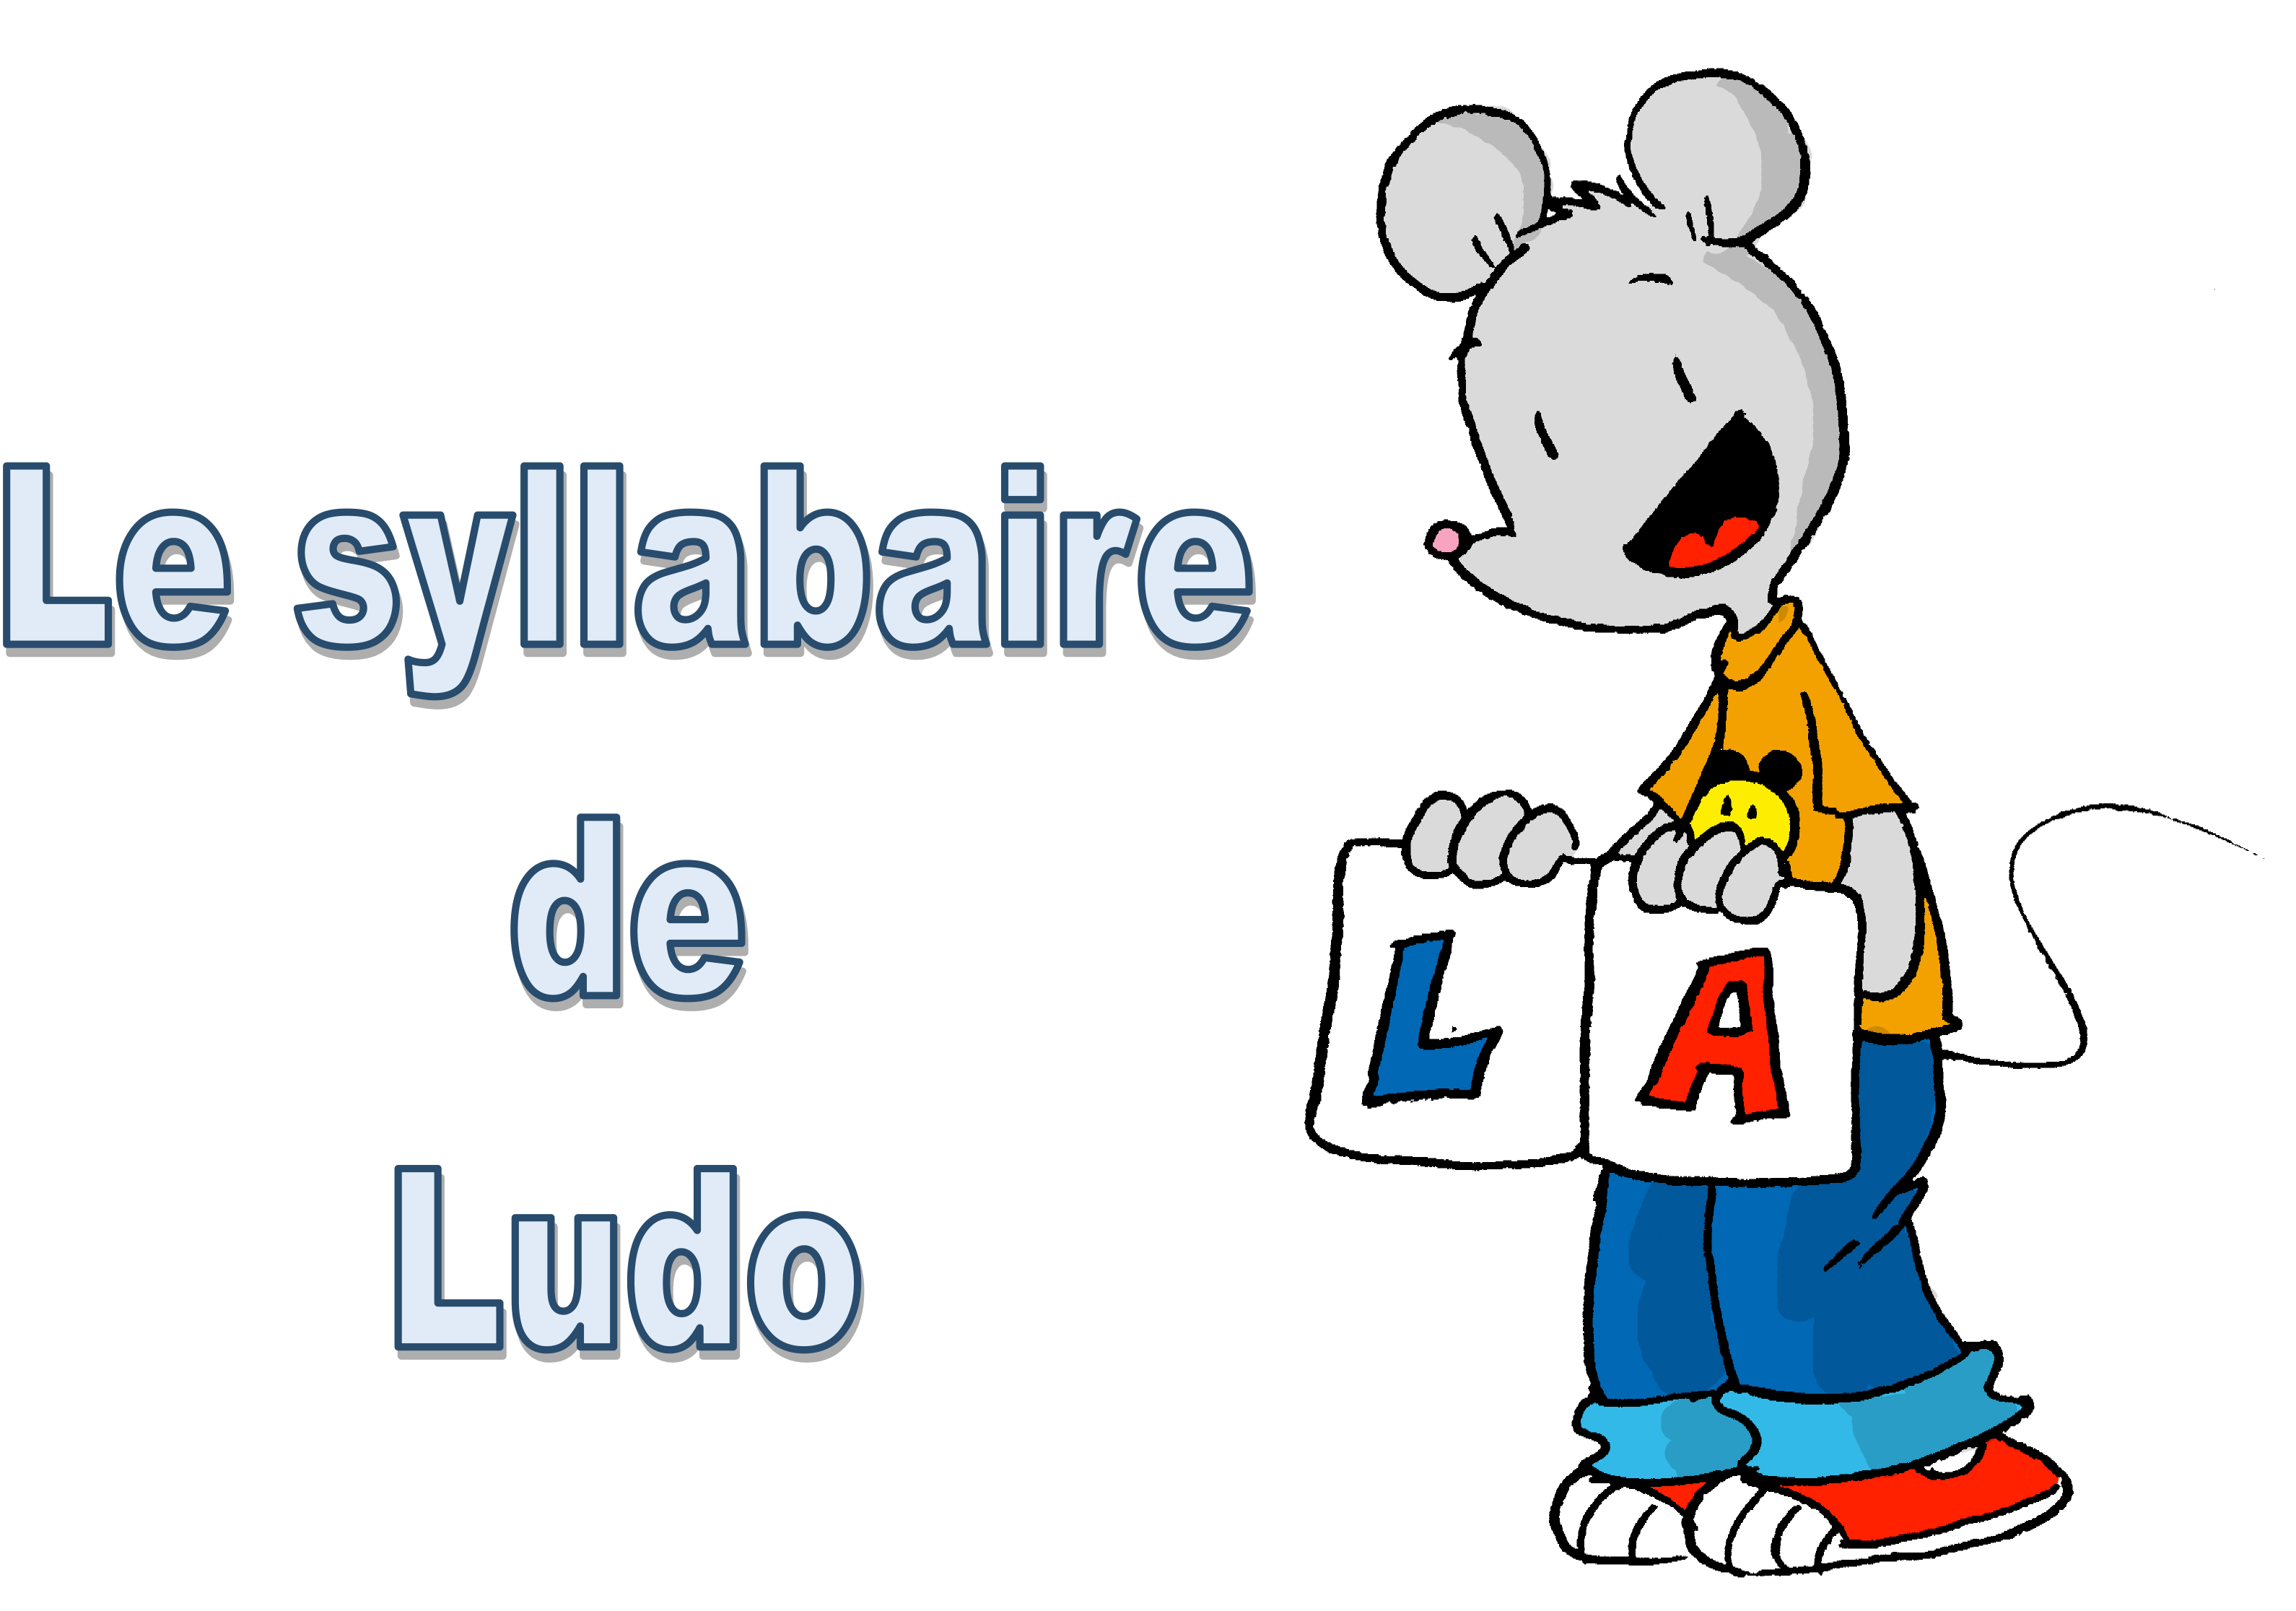 Ludu Syllabaire